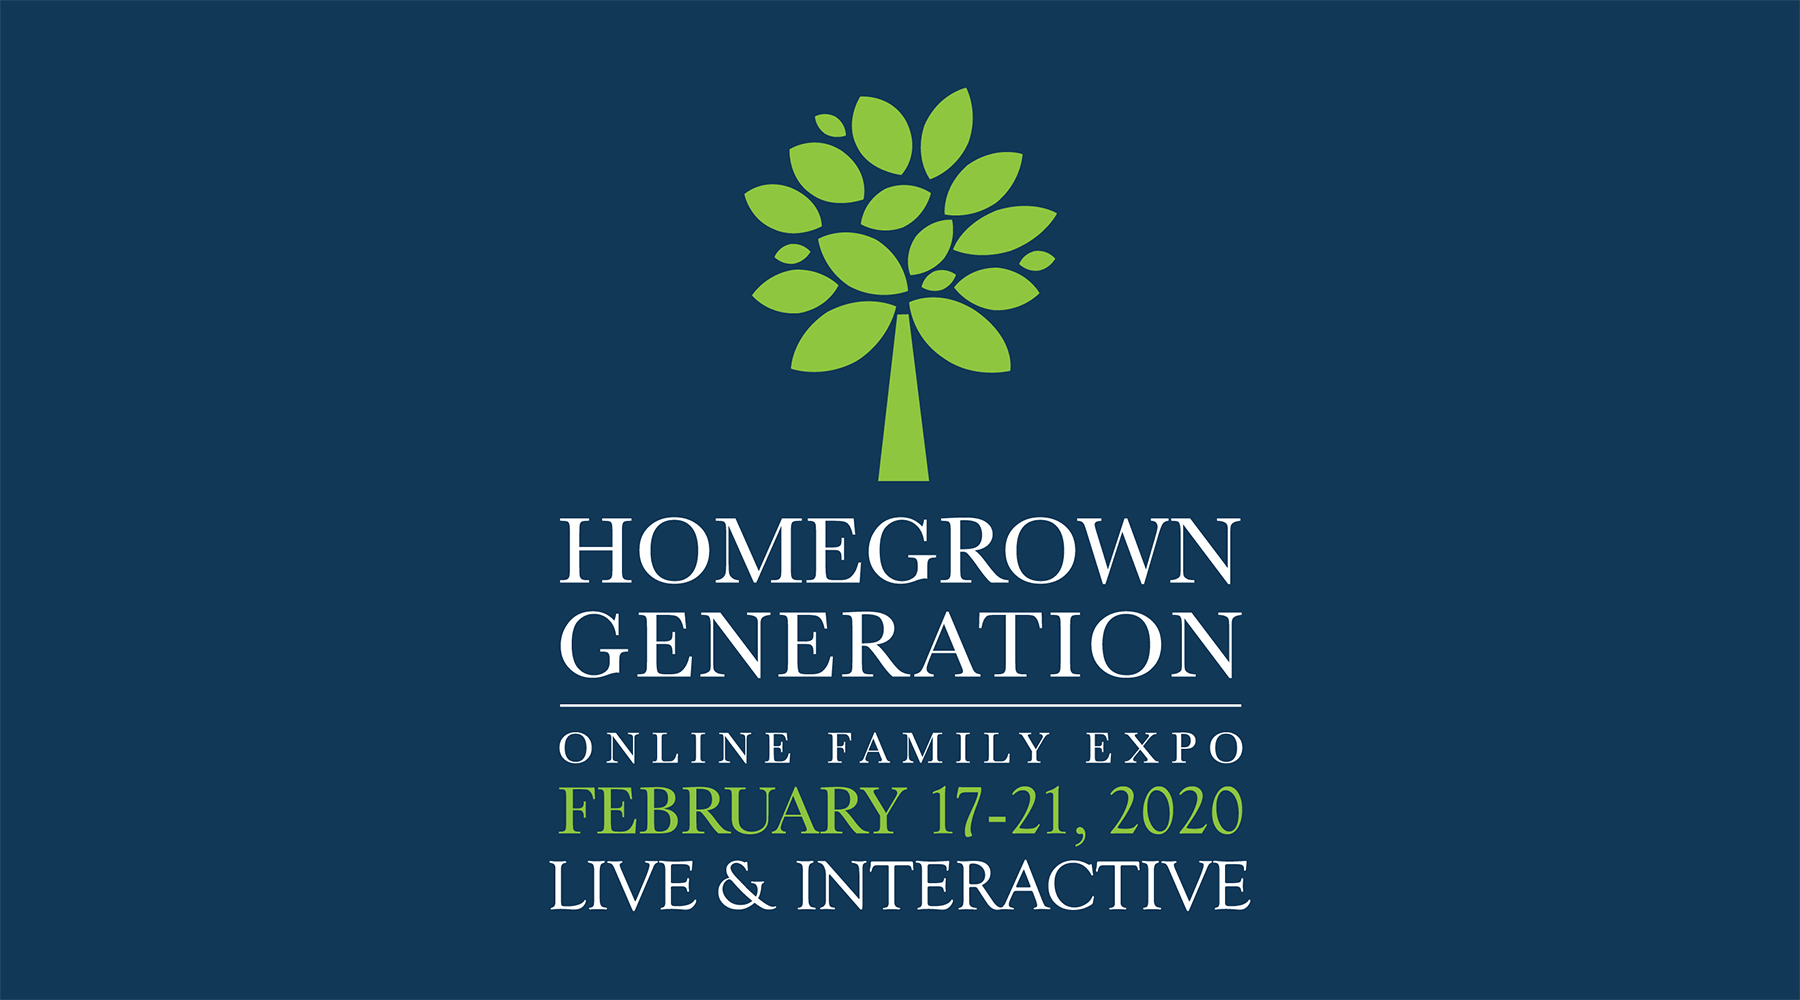 Homegrown Generation Online Family Expo banner